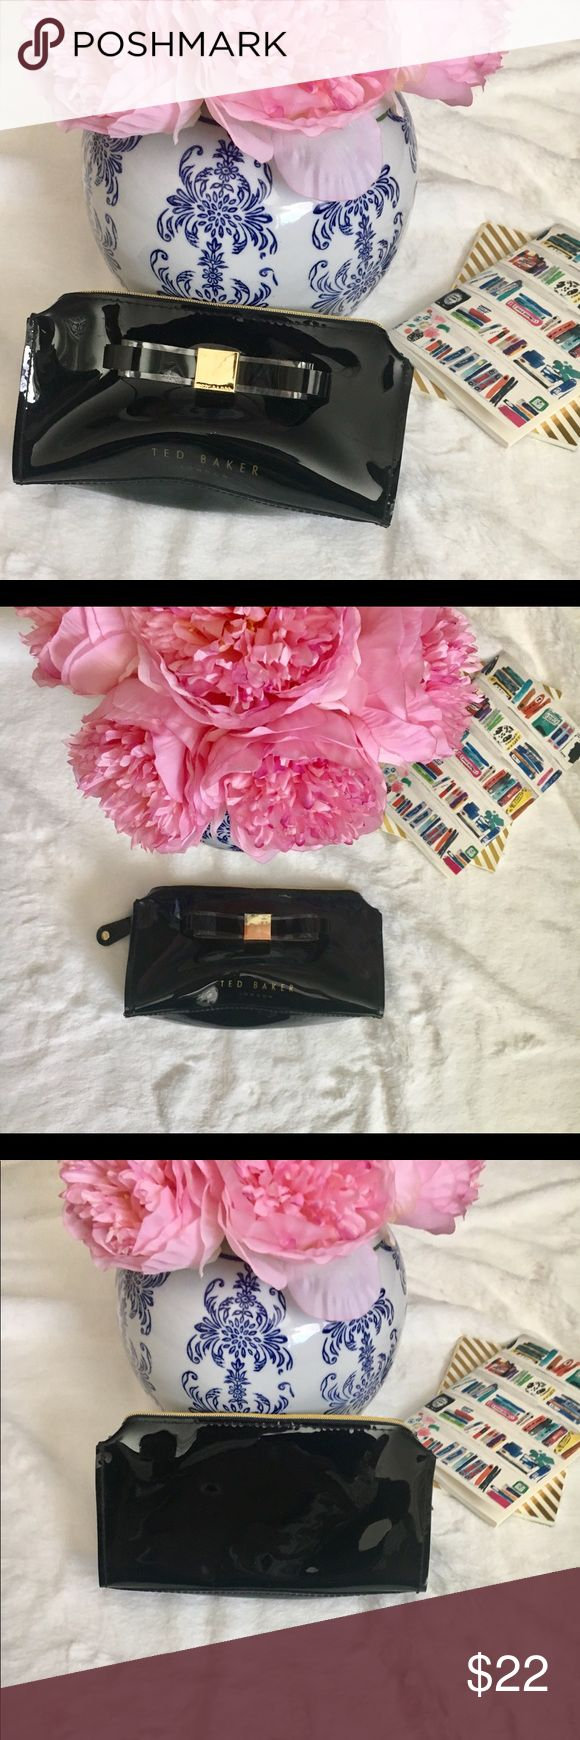 NWOT Ted Baker PV Cosmetic Bag Black shiny cosmetic bag. Classic ted baker bow makes this bag extra cute! No wear on inside and in great condition! W 7.25 in. H 4 in. D 2 in.   No trades Ted Baker London Bags Cosmetic Bags & Cases